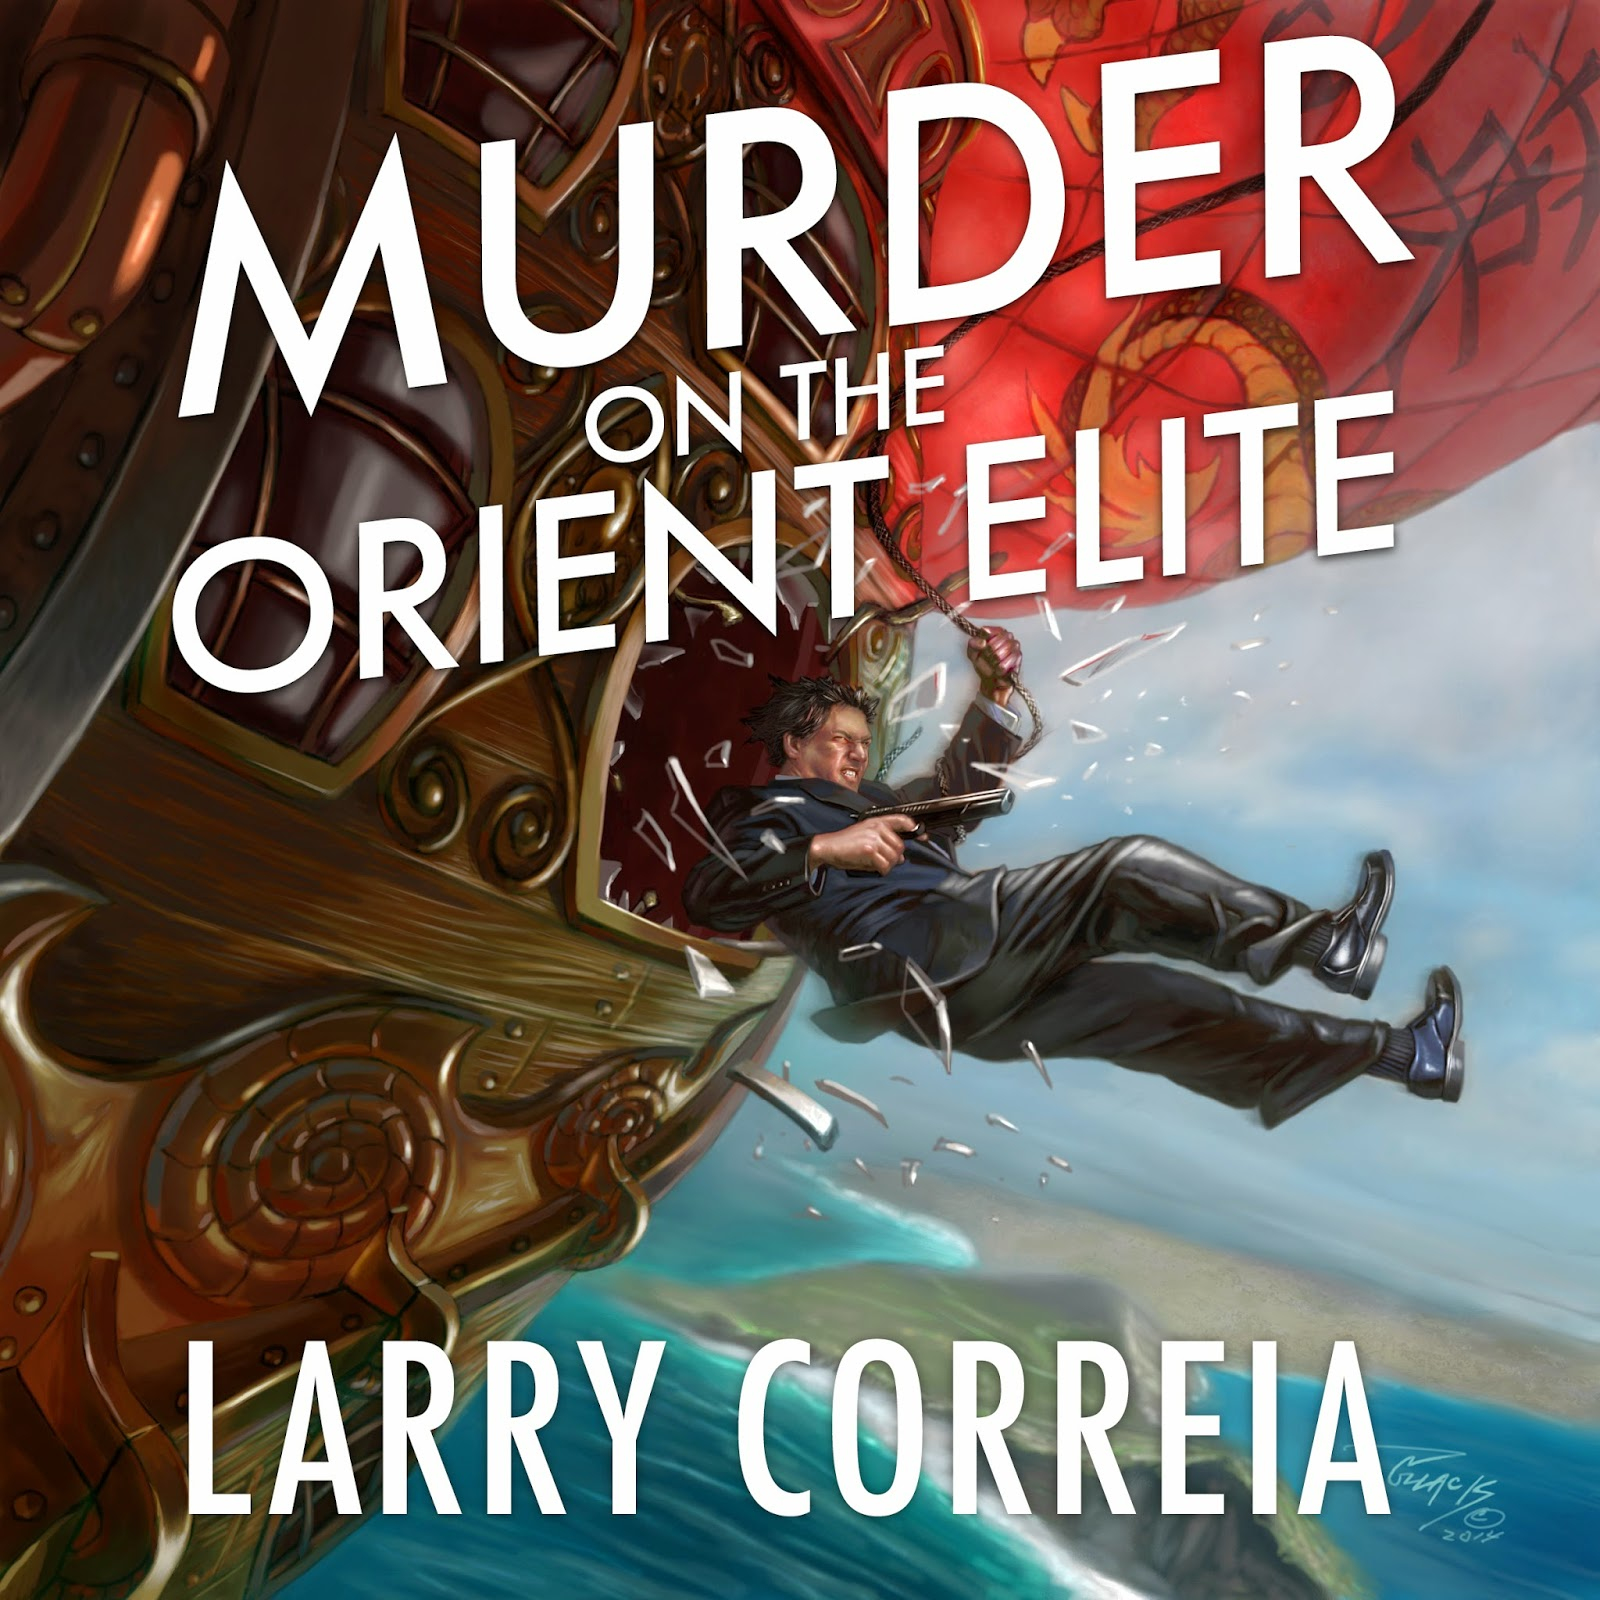 """Murder on the Orient Elite"" by Larry Correia audiobook."